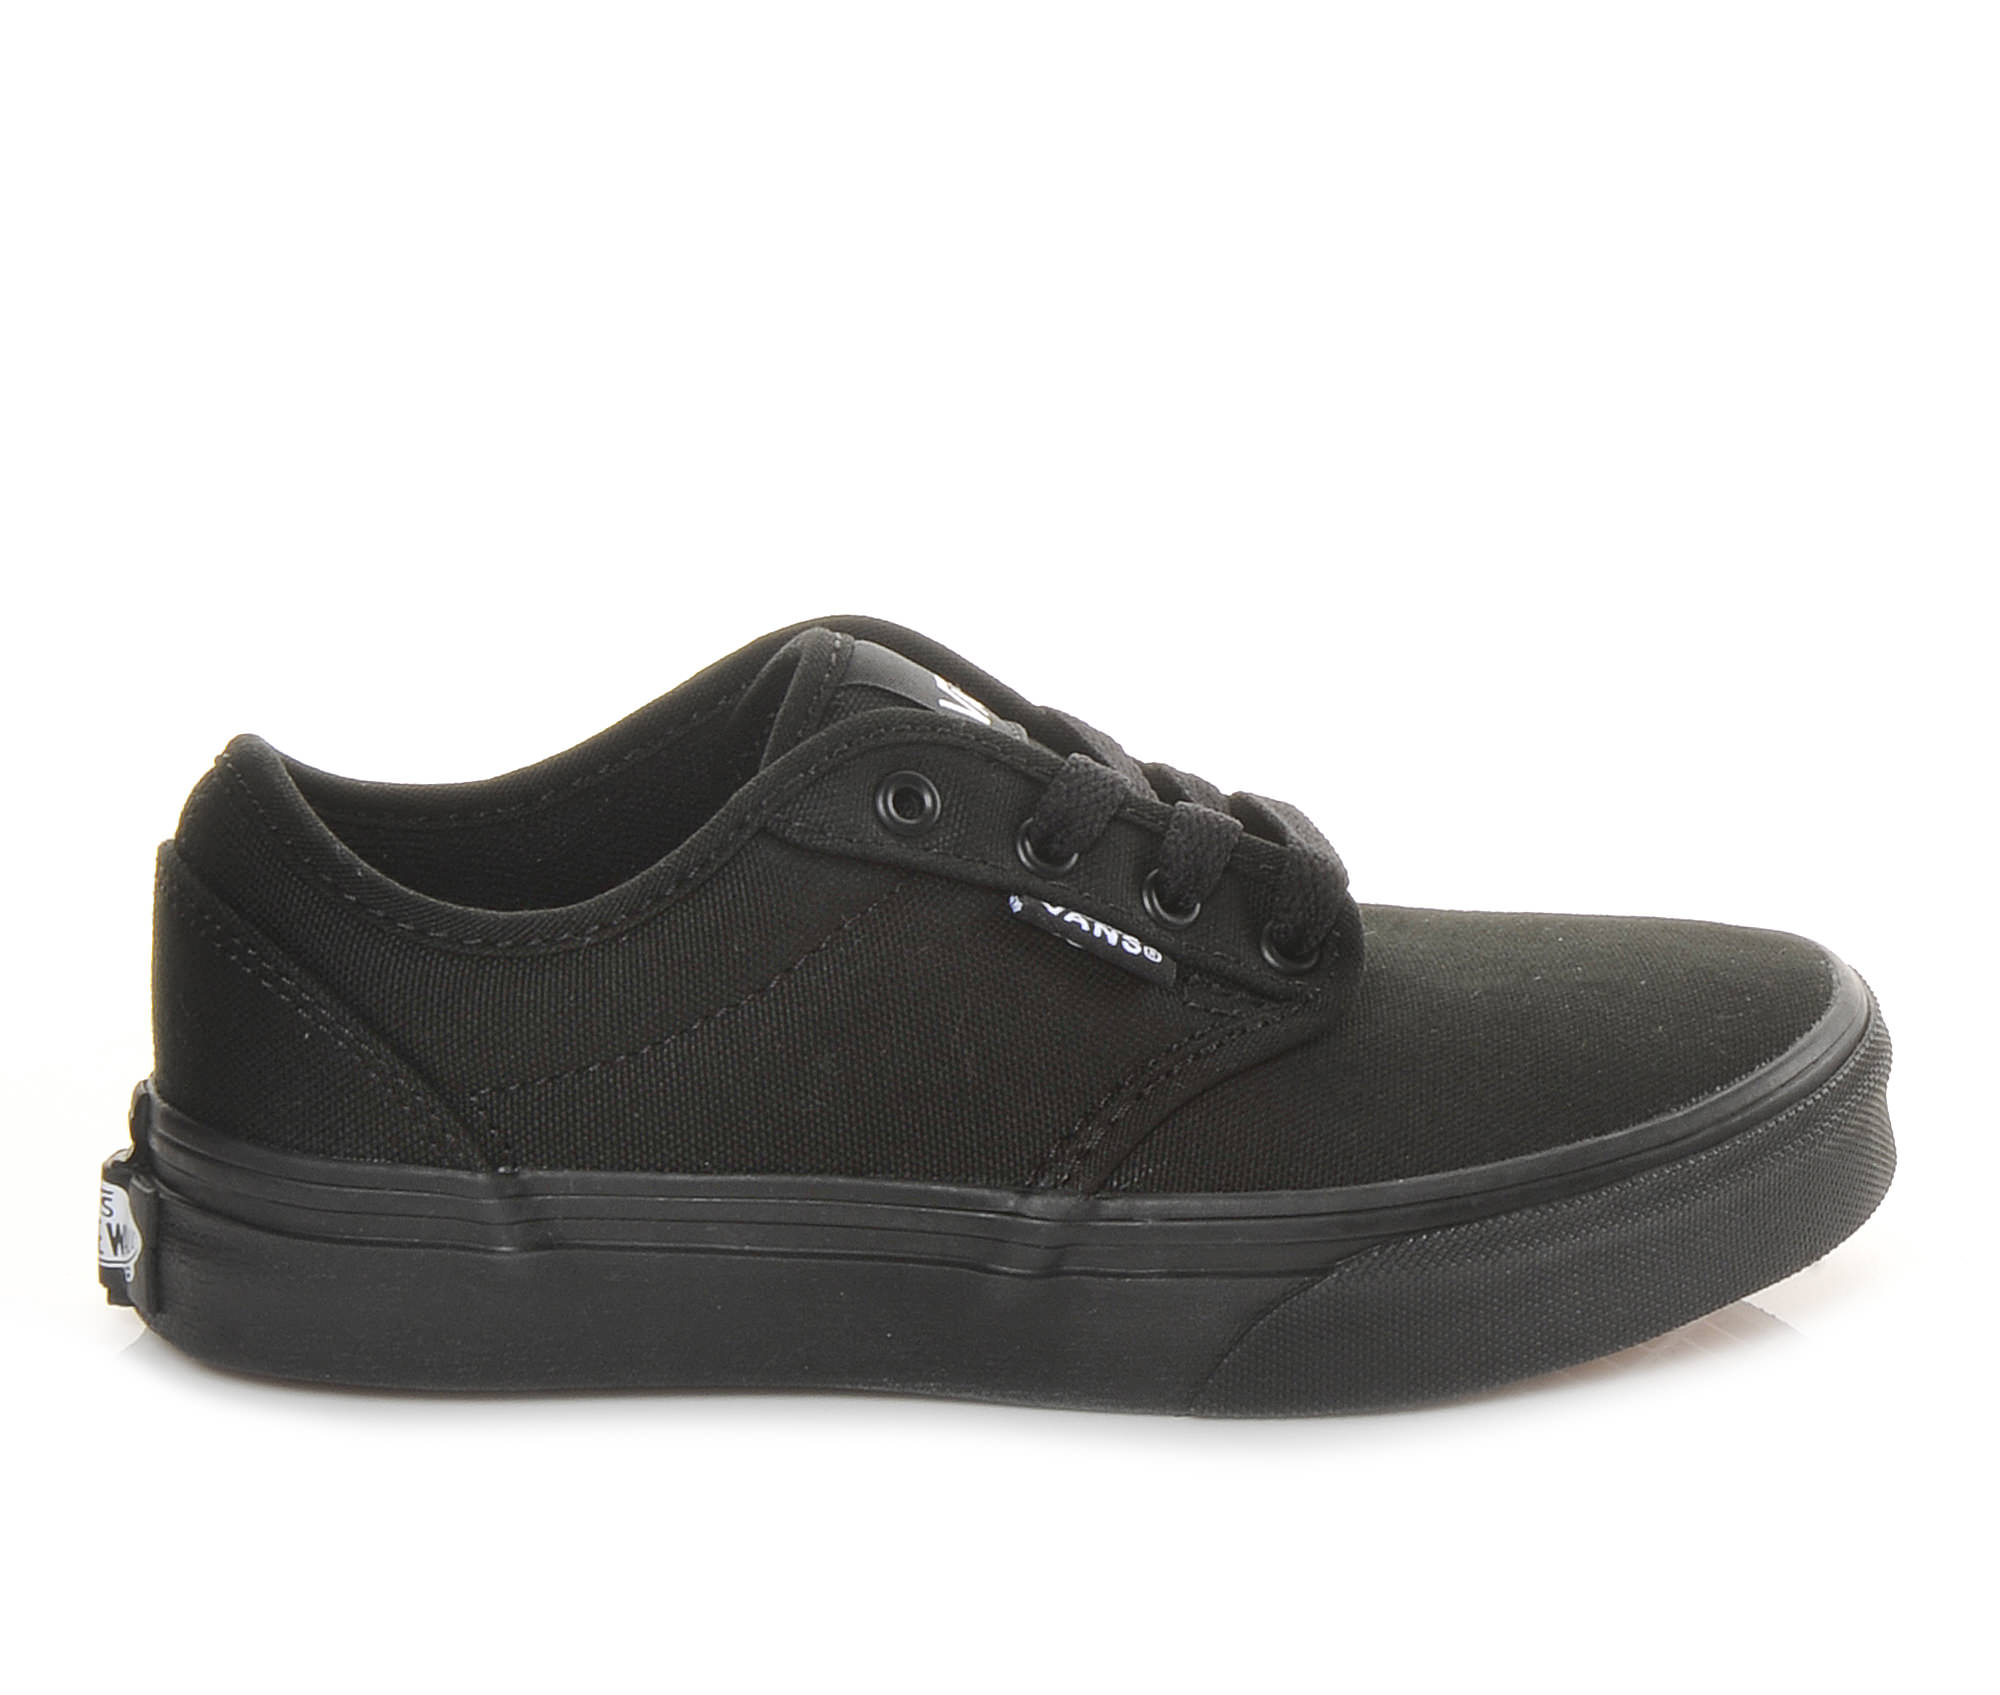 Boys' Vans Atwood Skate Shoes (Black)